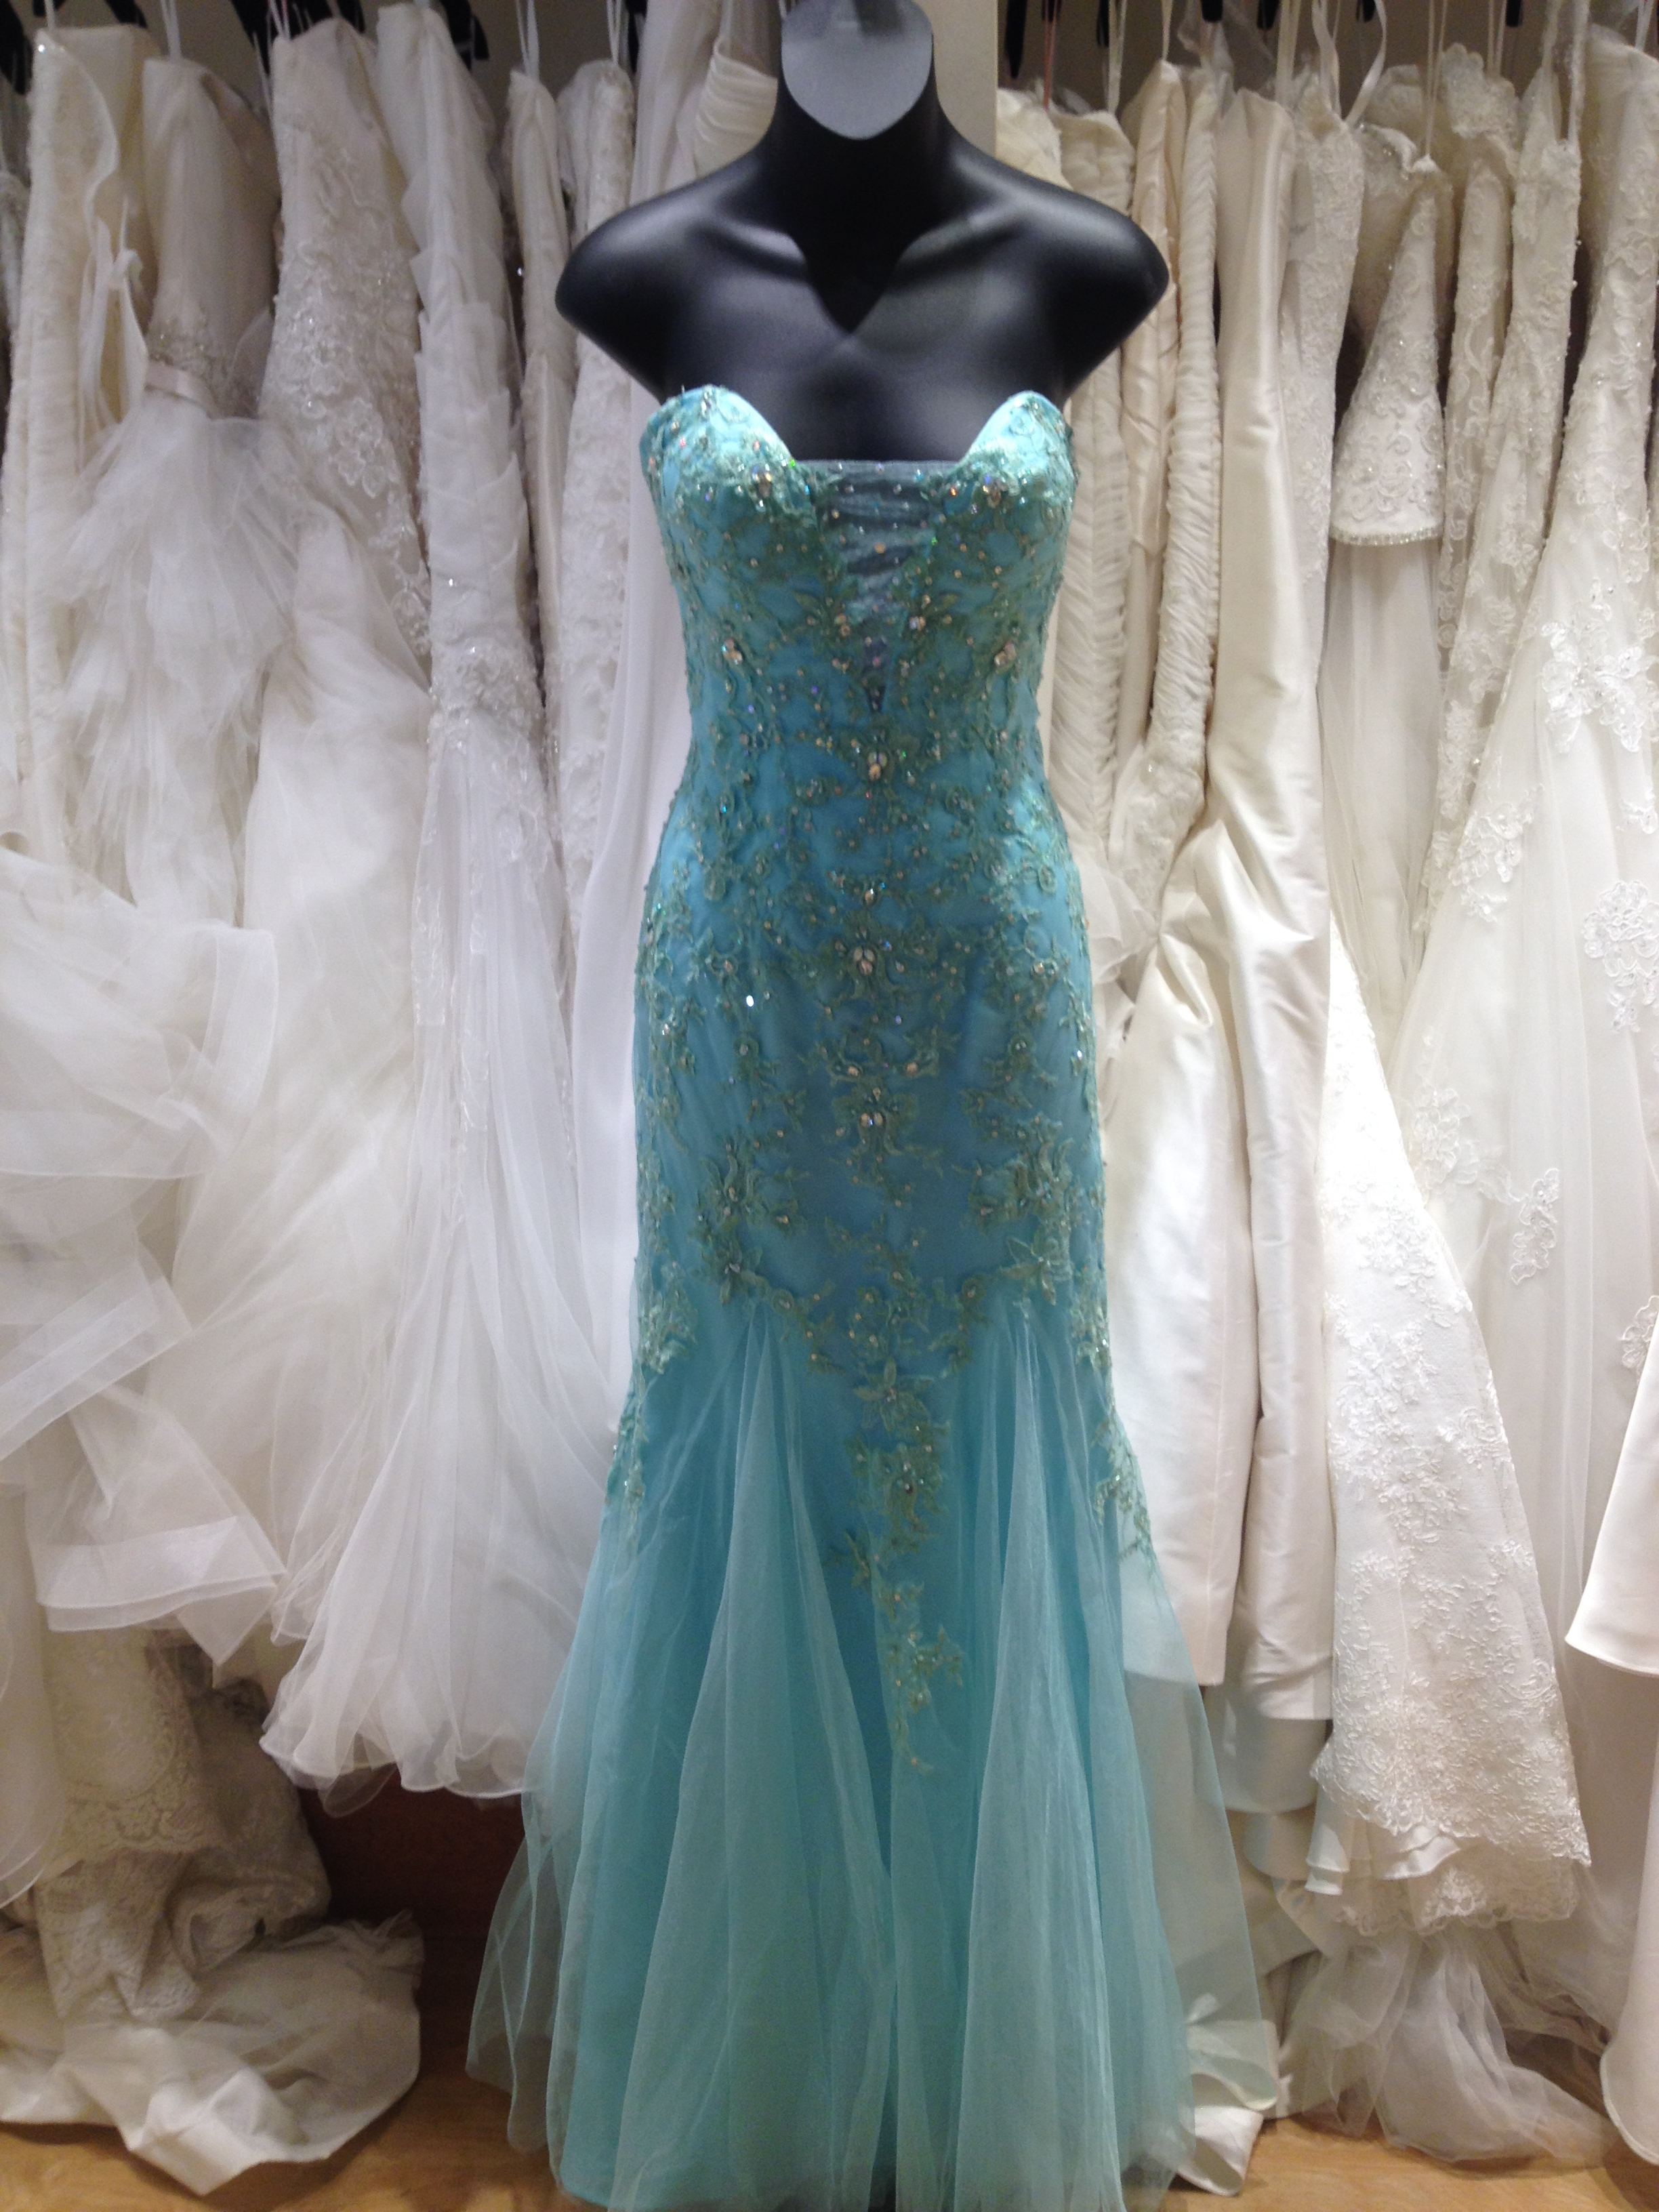 Famous Prom Dresses Honolulu Ornament - All Wedding Dresses ...